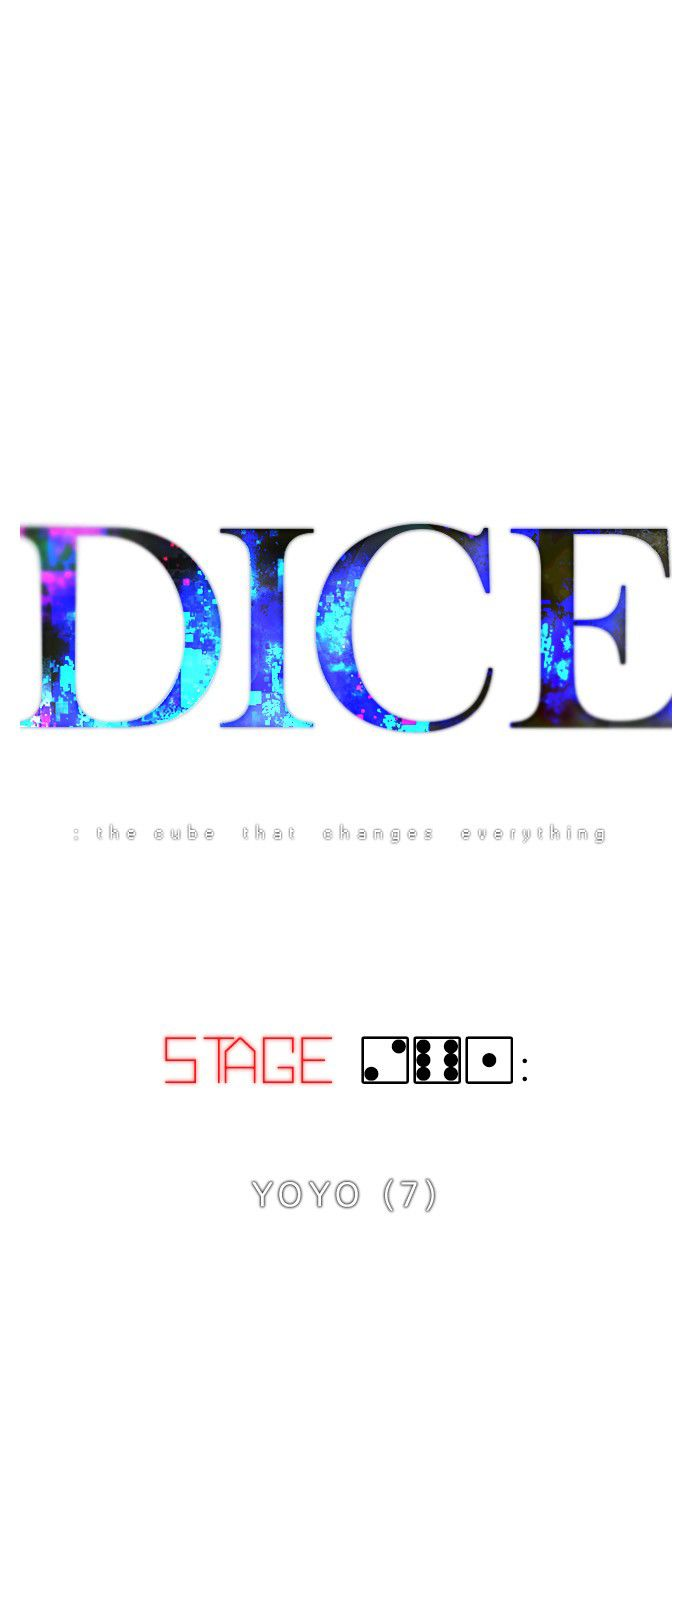 DICE: the cube that changes everything 261 Page 1